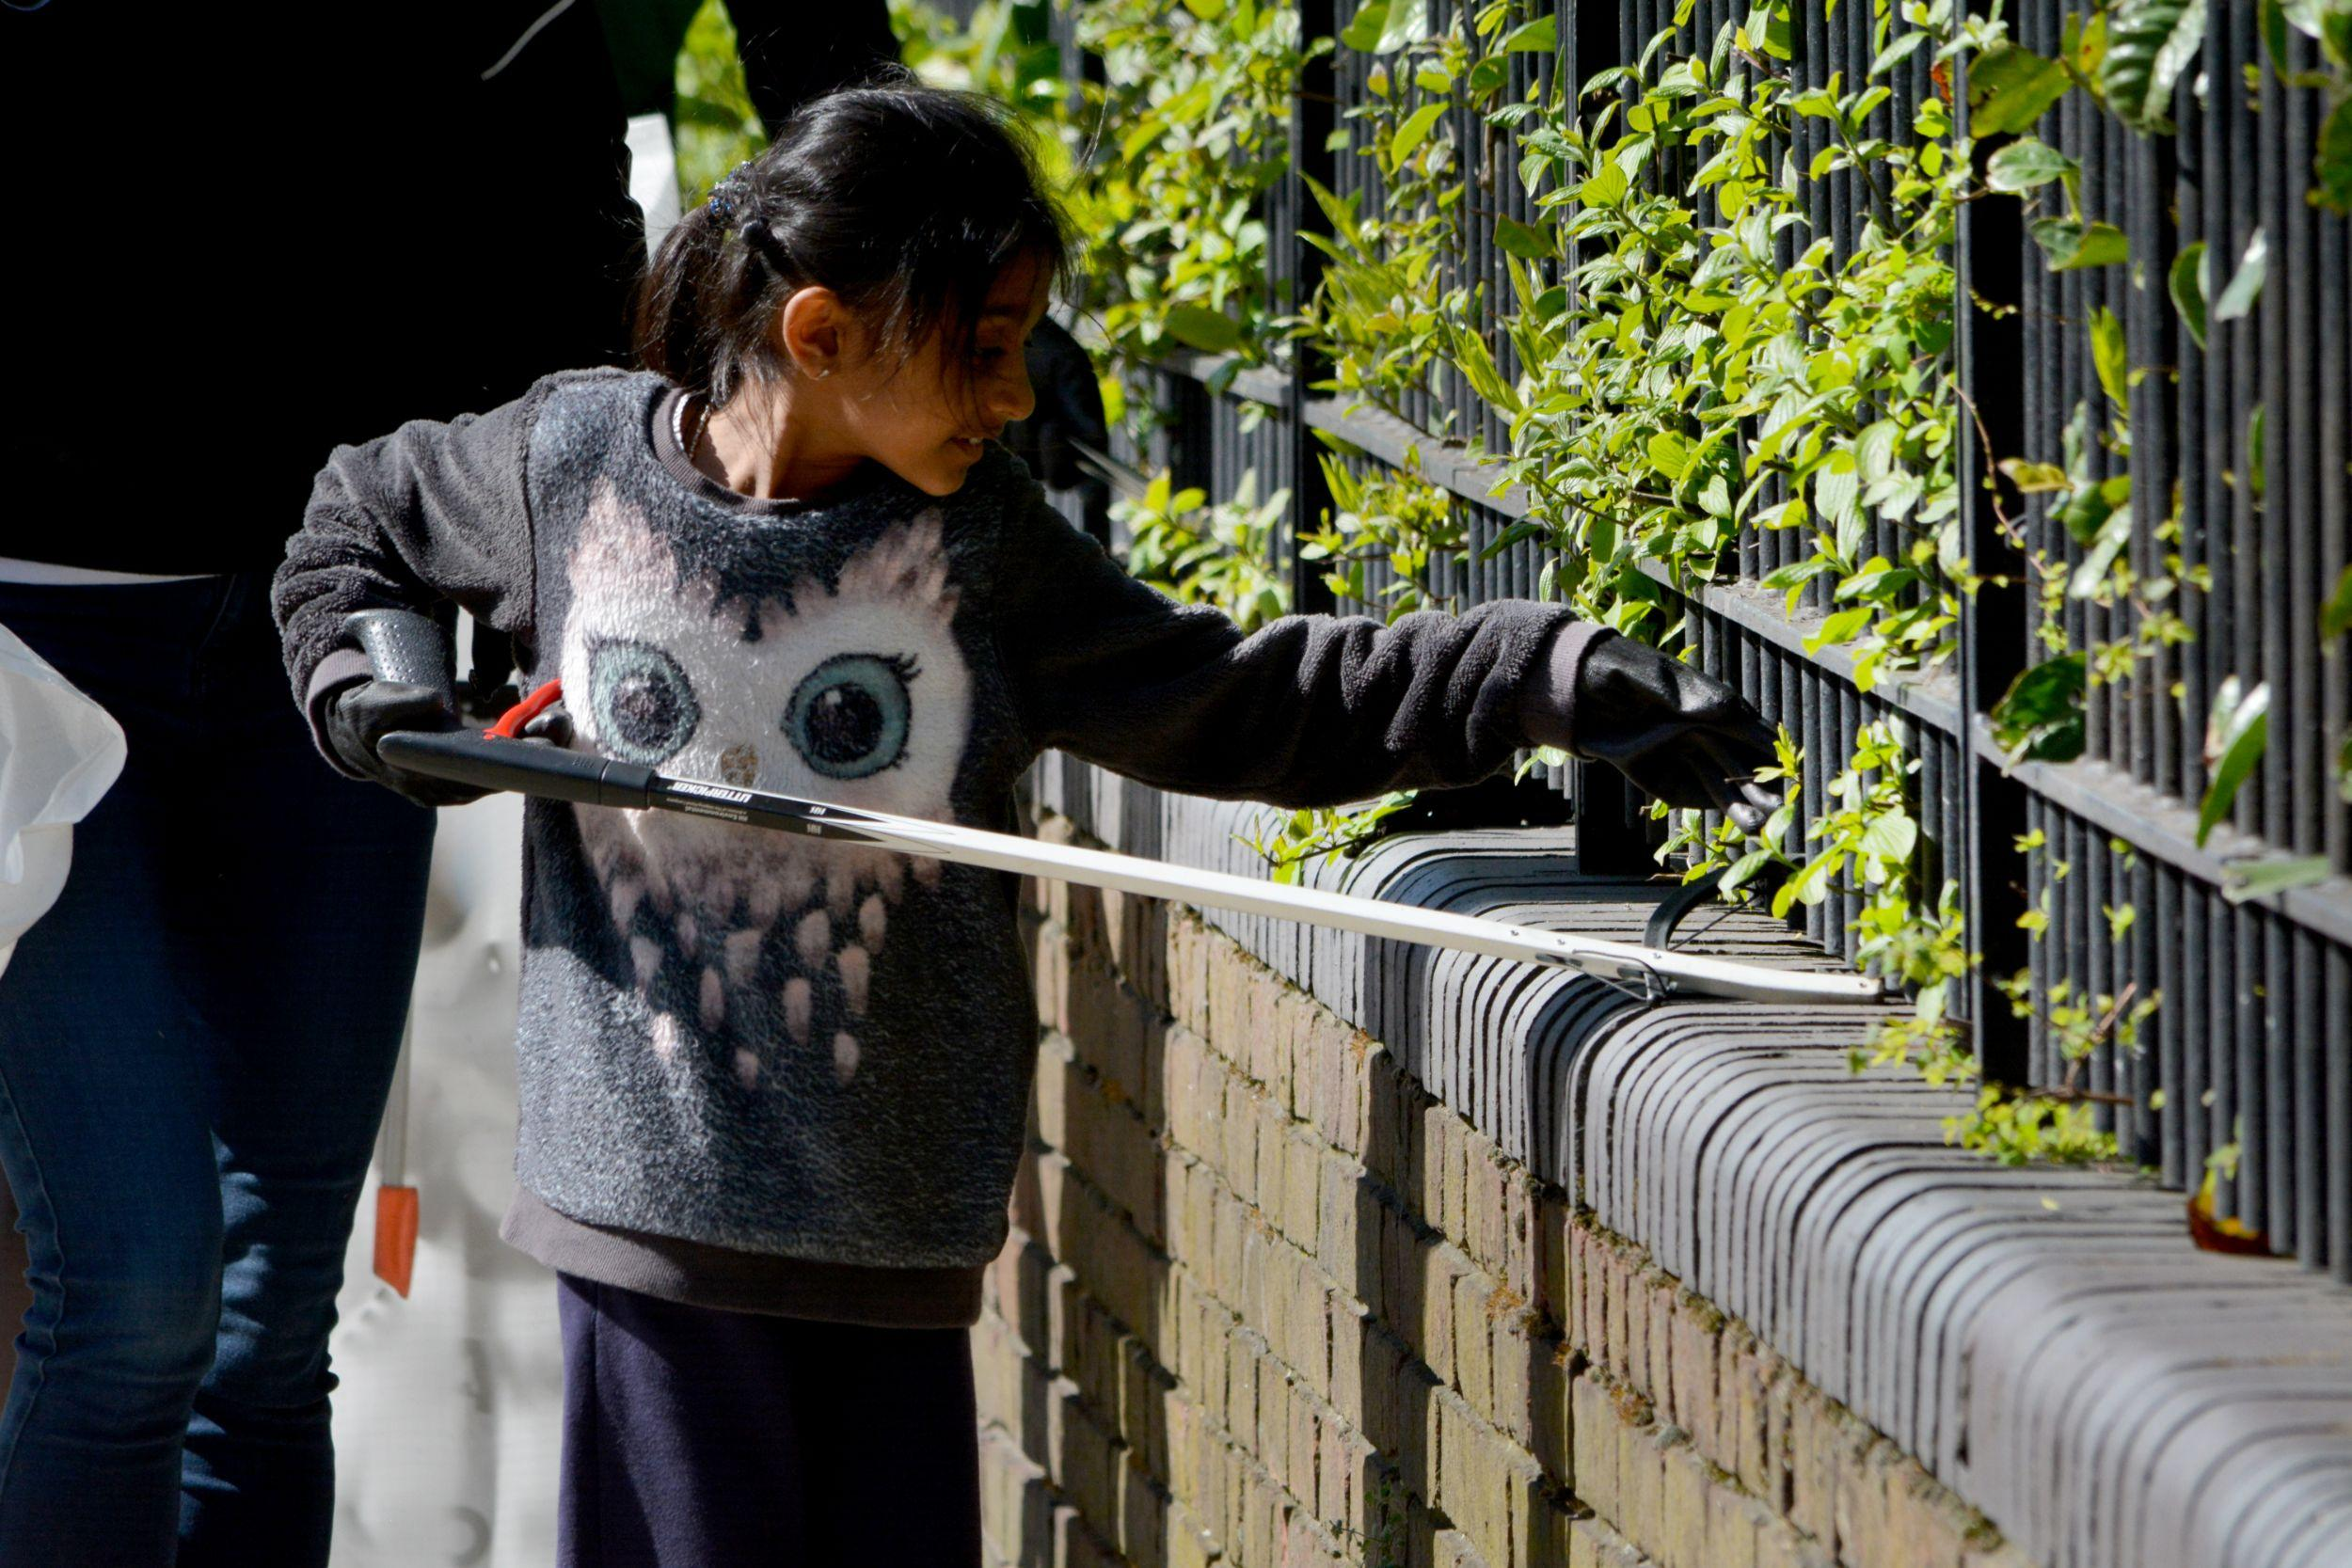 A girl searching for litter between railings